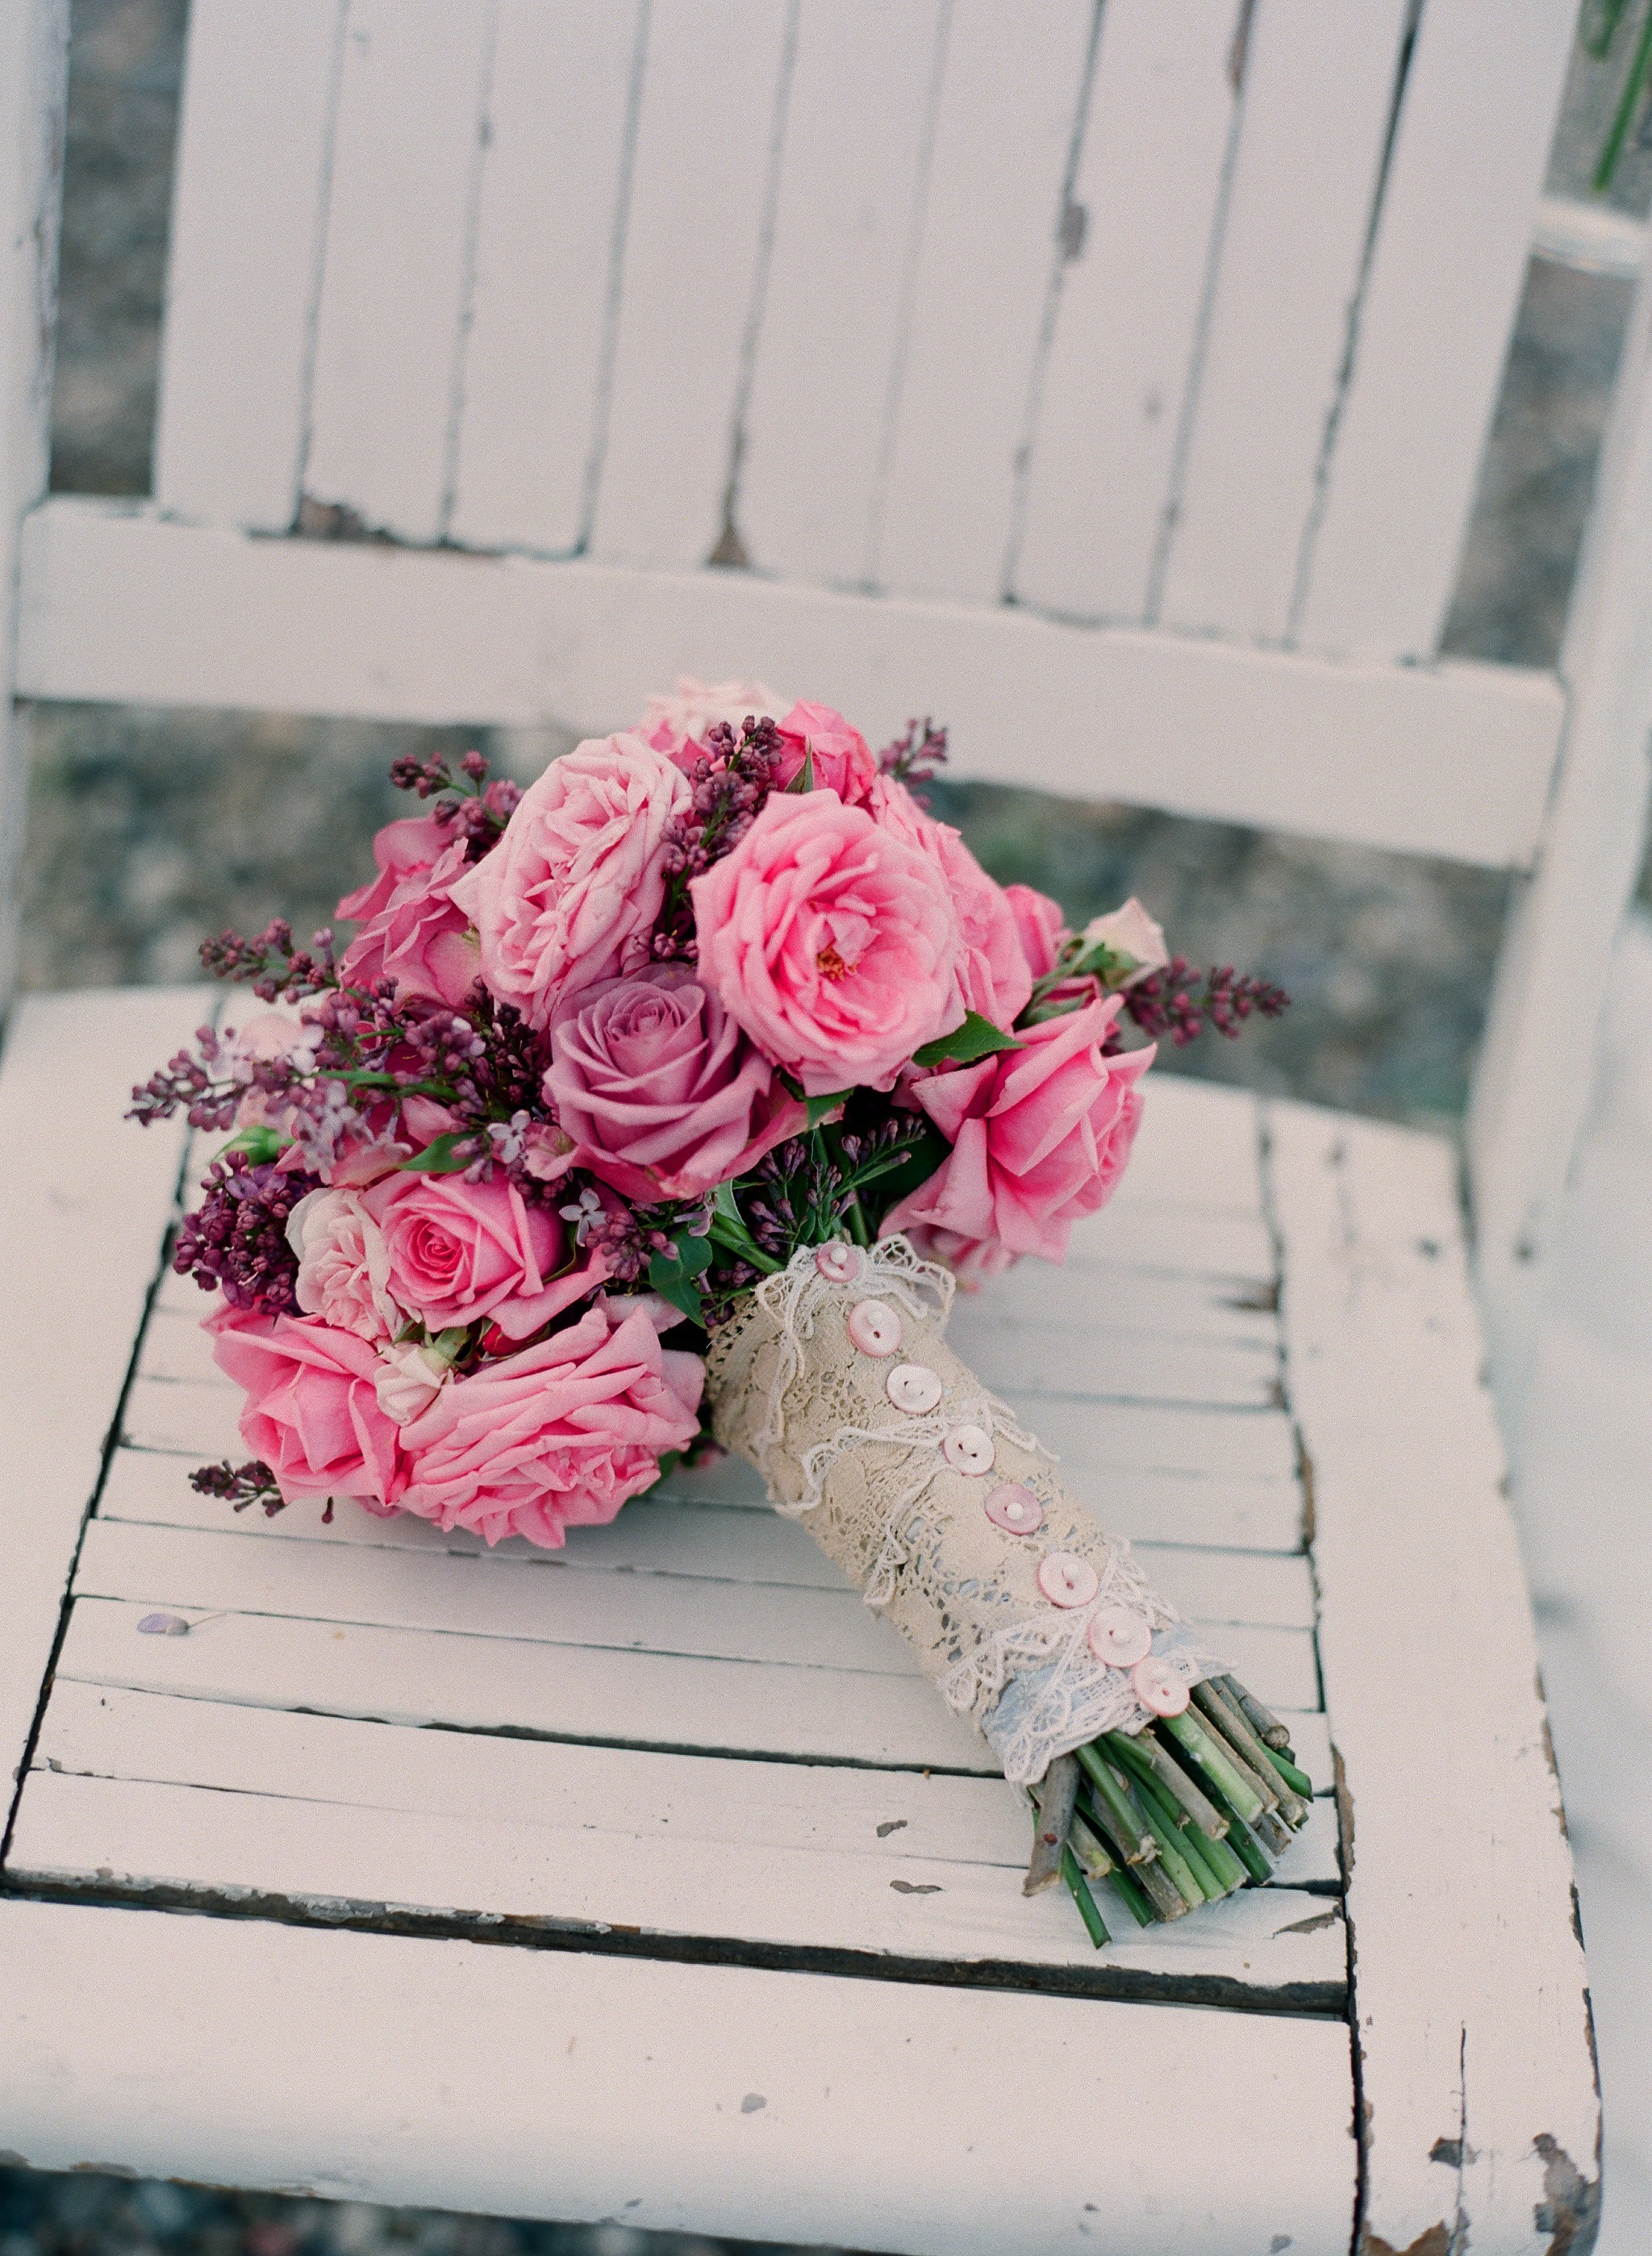 Styled-wedding-beaux-arts-tea-time-monique-lhuillier-santa-barbara-chic-flowers-pink-bouquet-rose-114.original